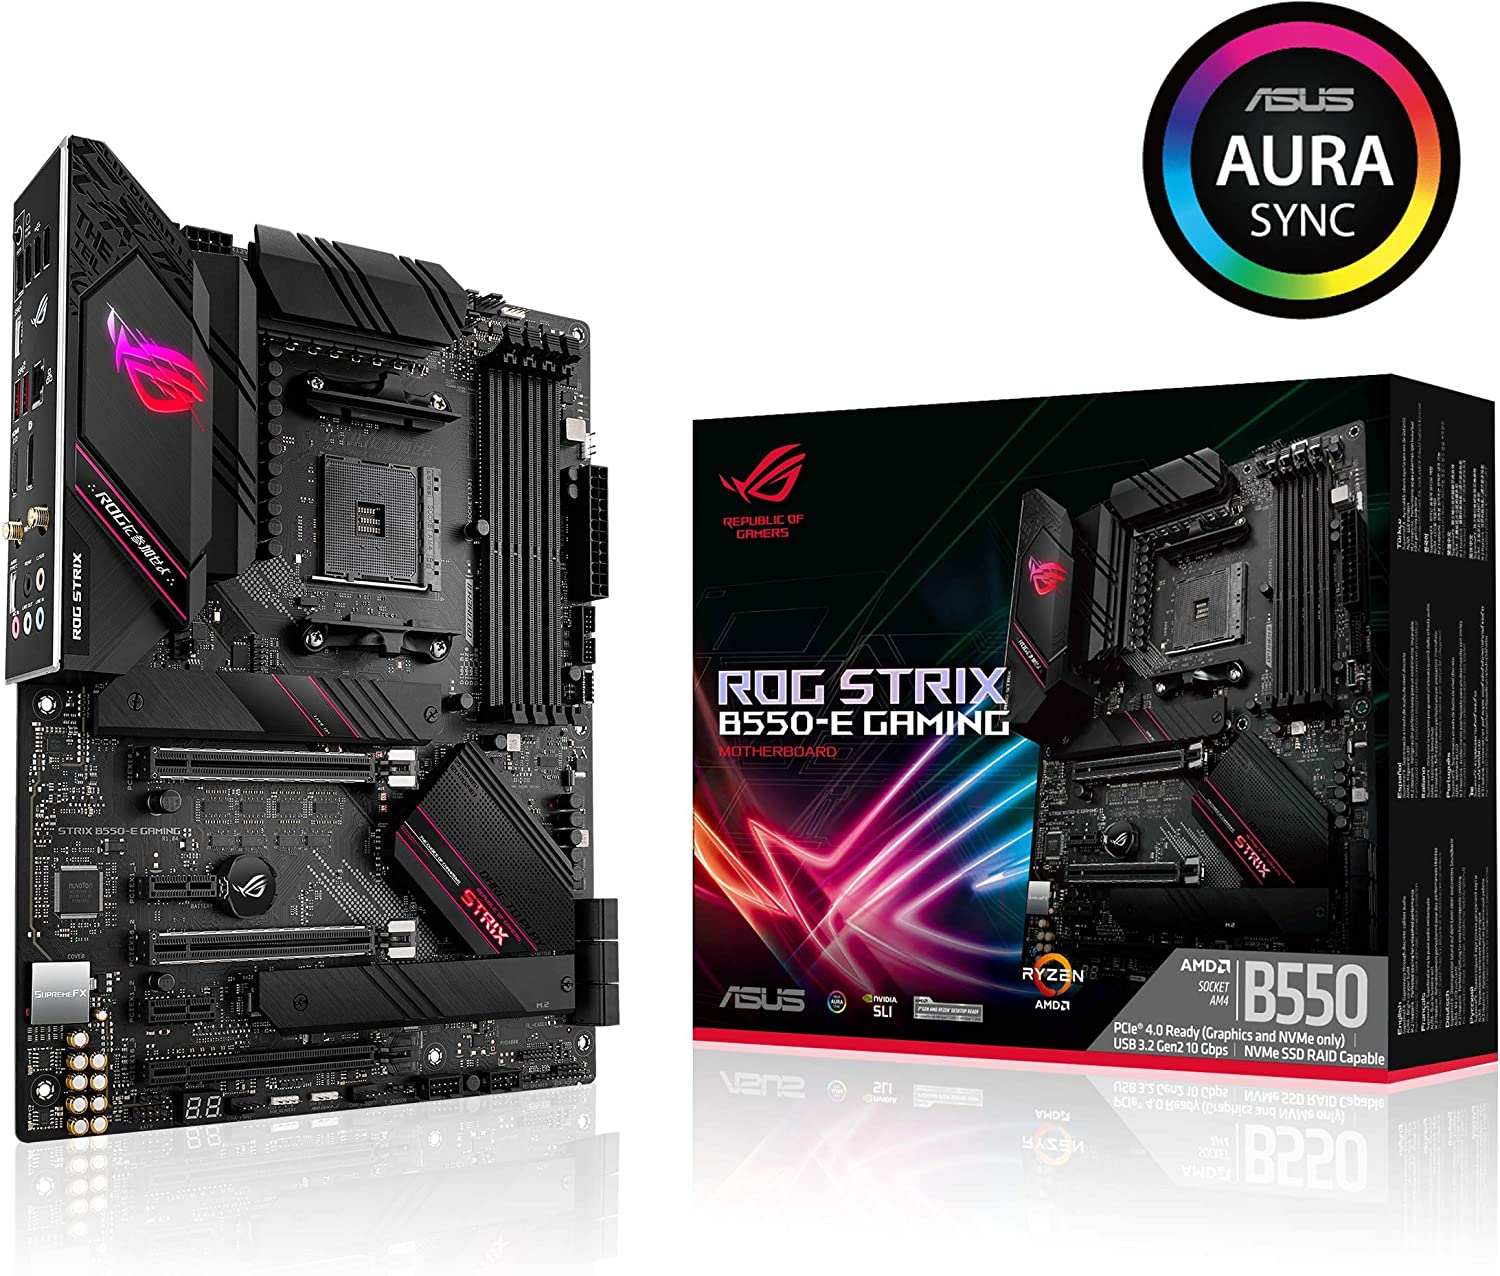 ASUS ROG Strix B550-E Gaming AMD AM4 (3rd Gen Ryzen ATX Gaming Motherboard (PCIe 4.0, NVIDIA SLI, WiFi 6, 2.5Gb LAN, 14+2 Power Stages, Front USB 3.2 Type-C, Addressable Gen 2 RGB and Aura Sync)